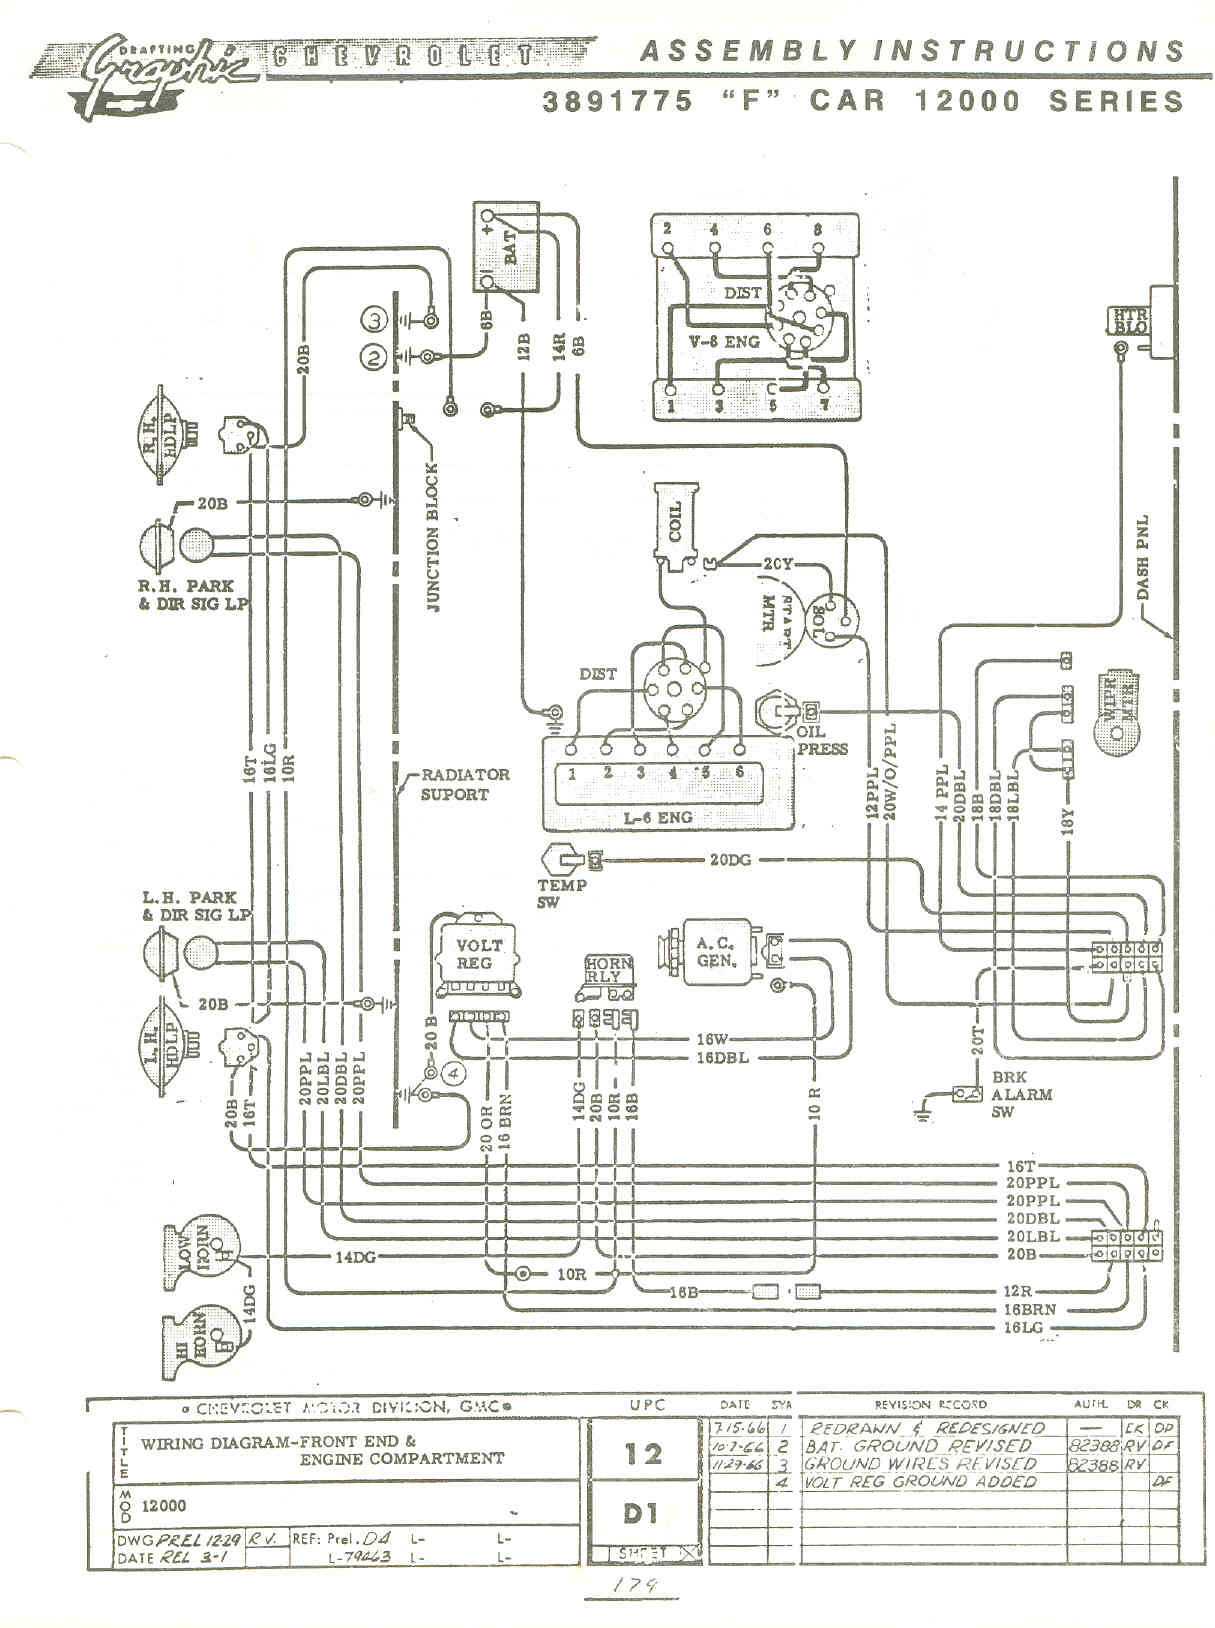 69 Camaro Heater Wiring Diagram -2005 Jeep Grand Cherokee Rear Light Wiring  Harness | Bege Place Wiring Diagram